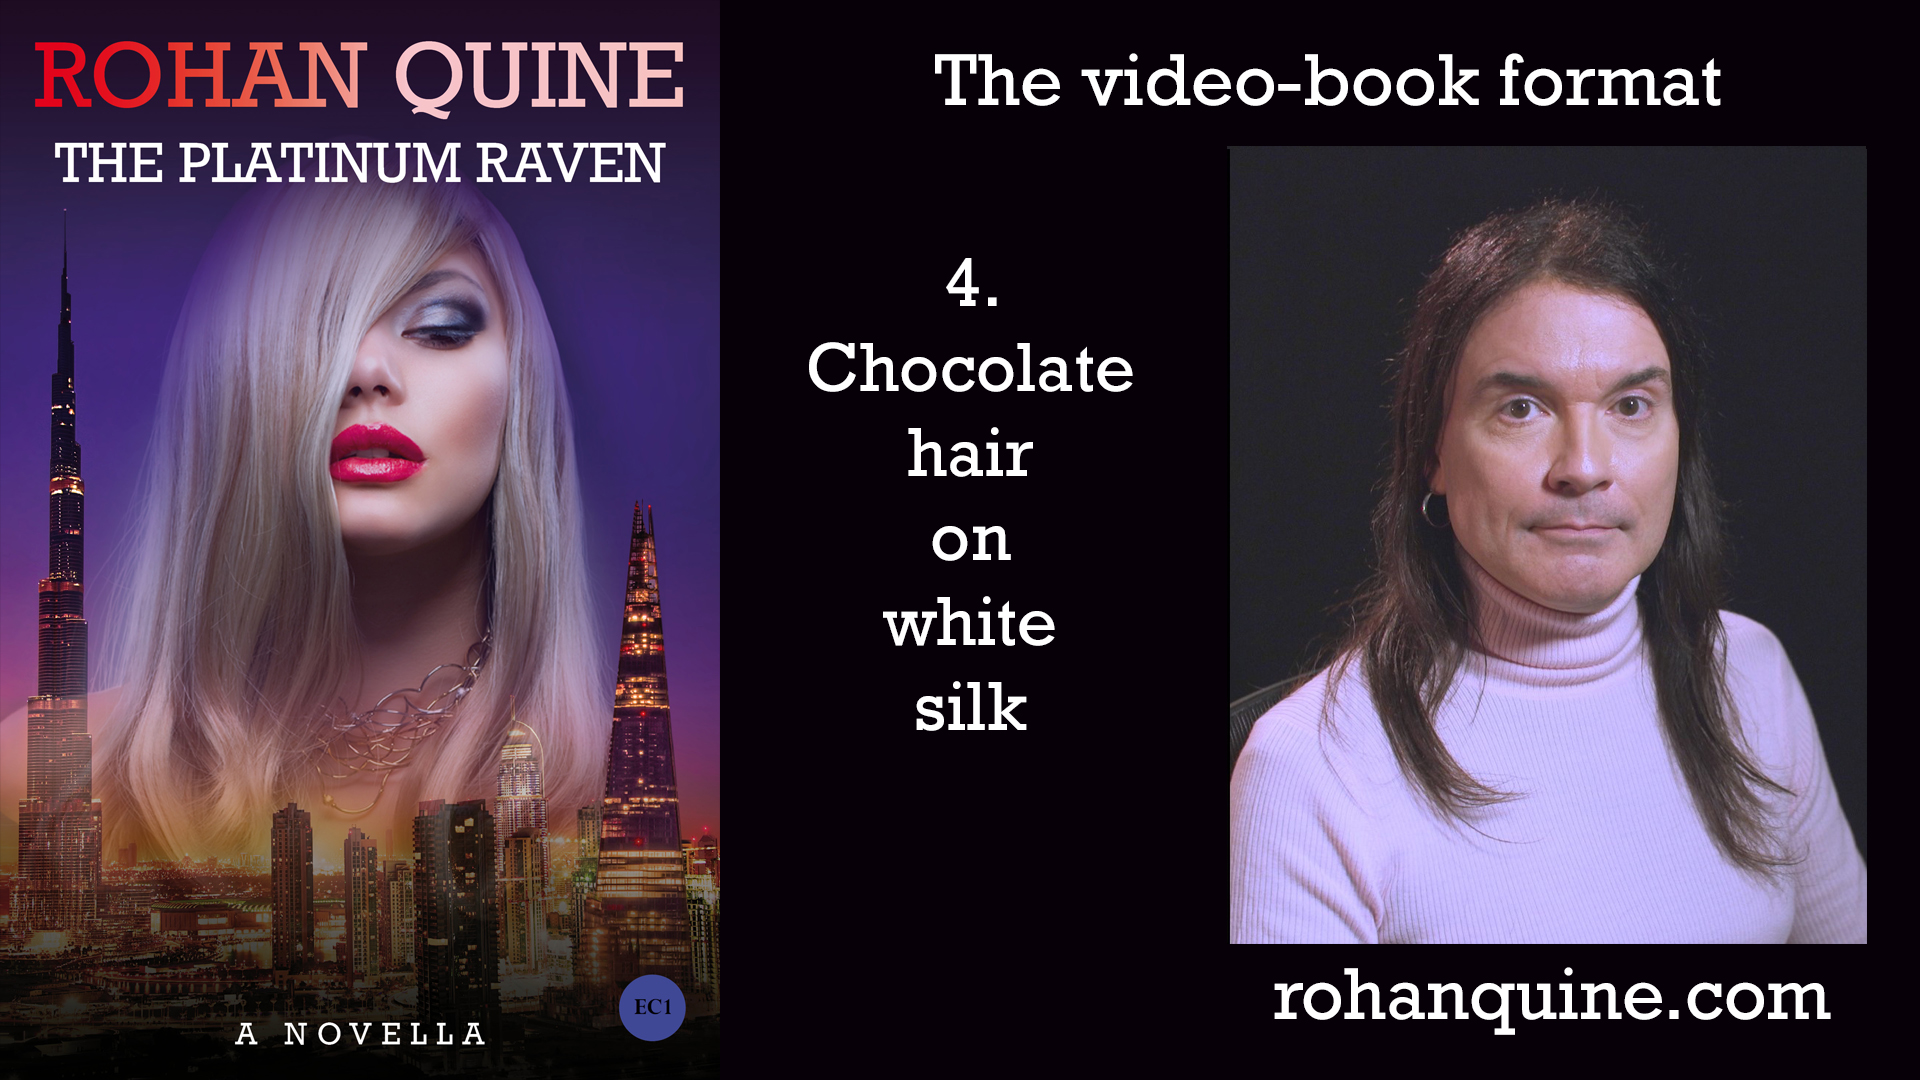 THE PLATINUM RAVEN by Rohan Quine - video-book format - chapter 4